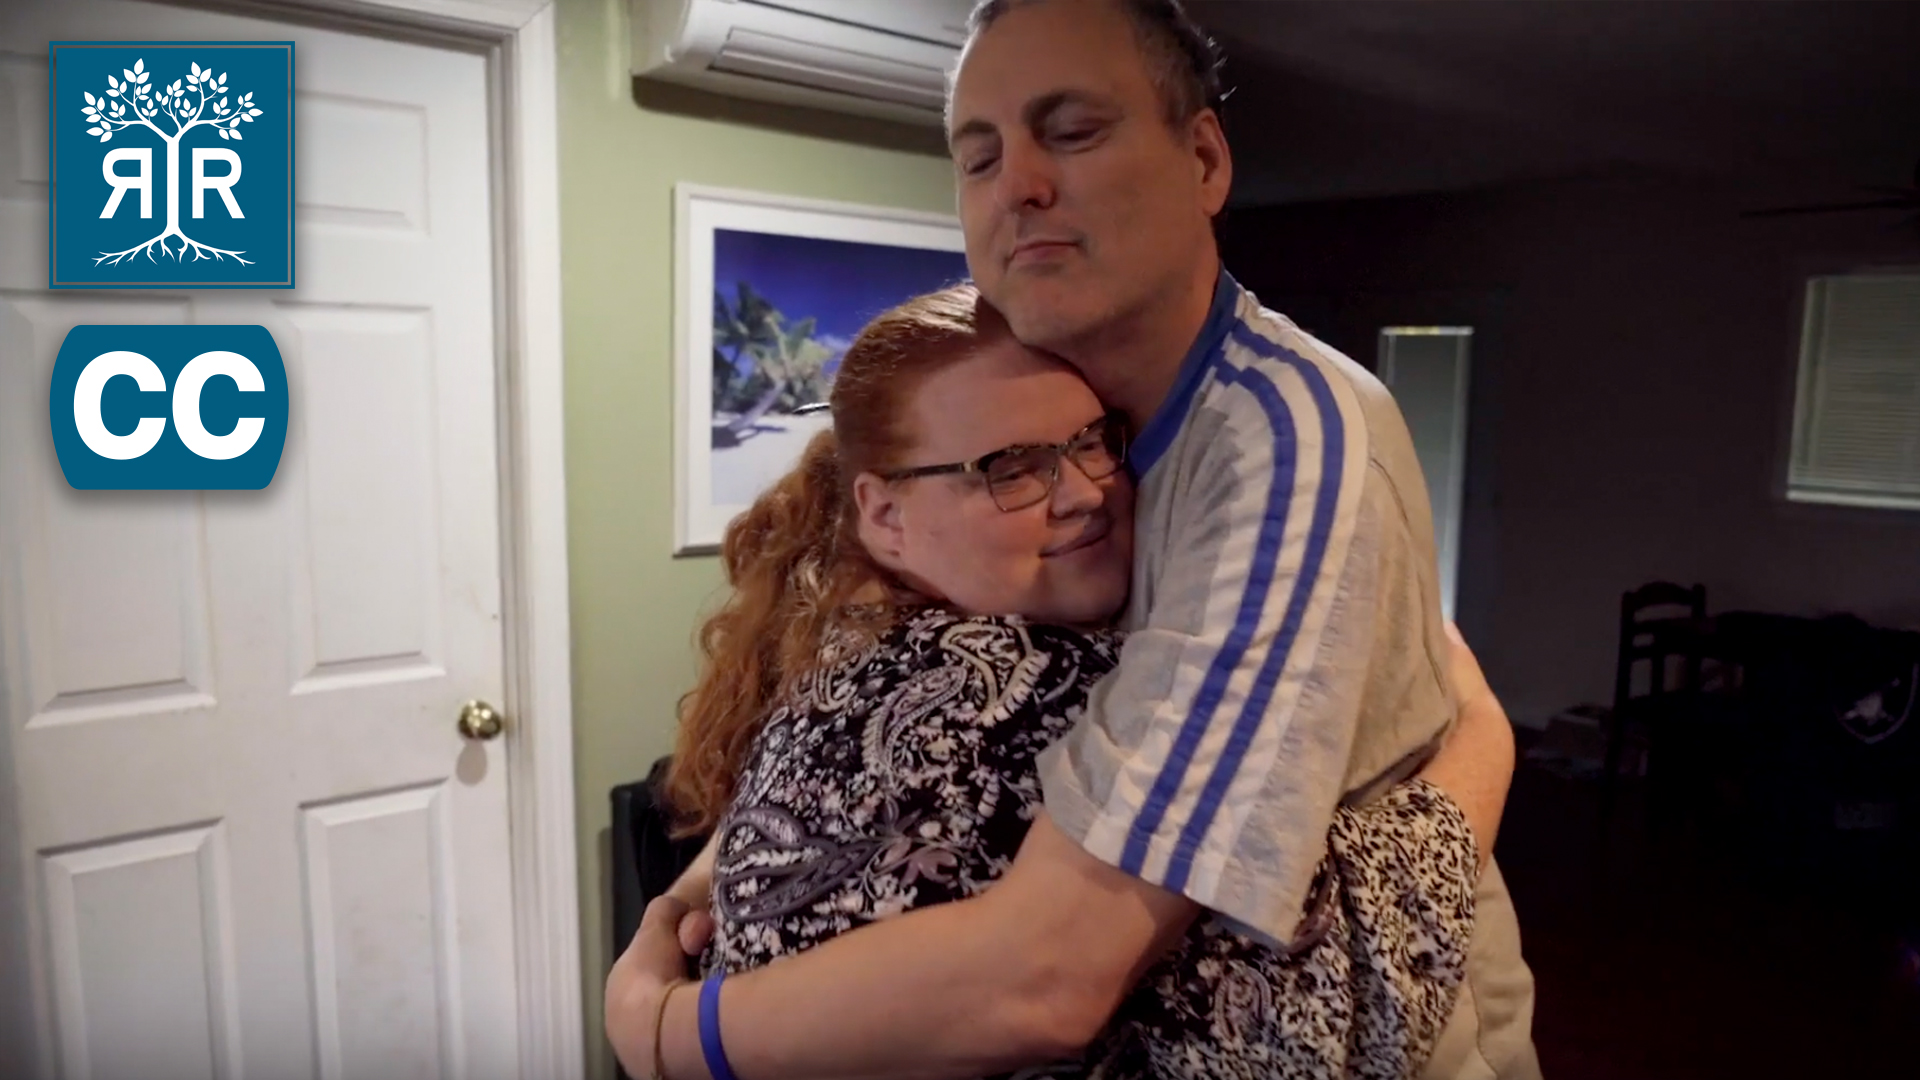 A middle aged white man hugs a white woman with red hair.